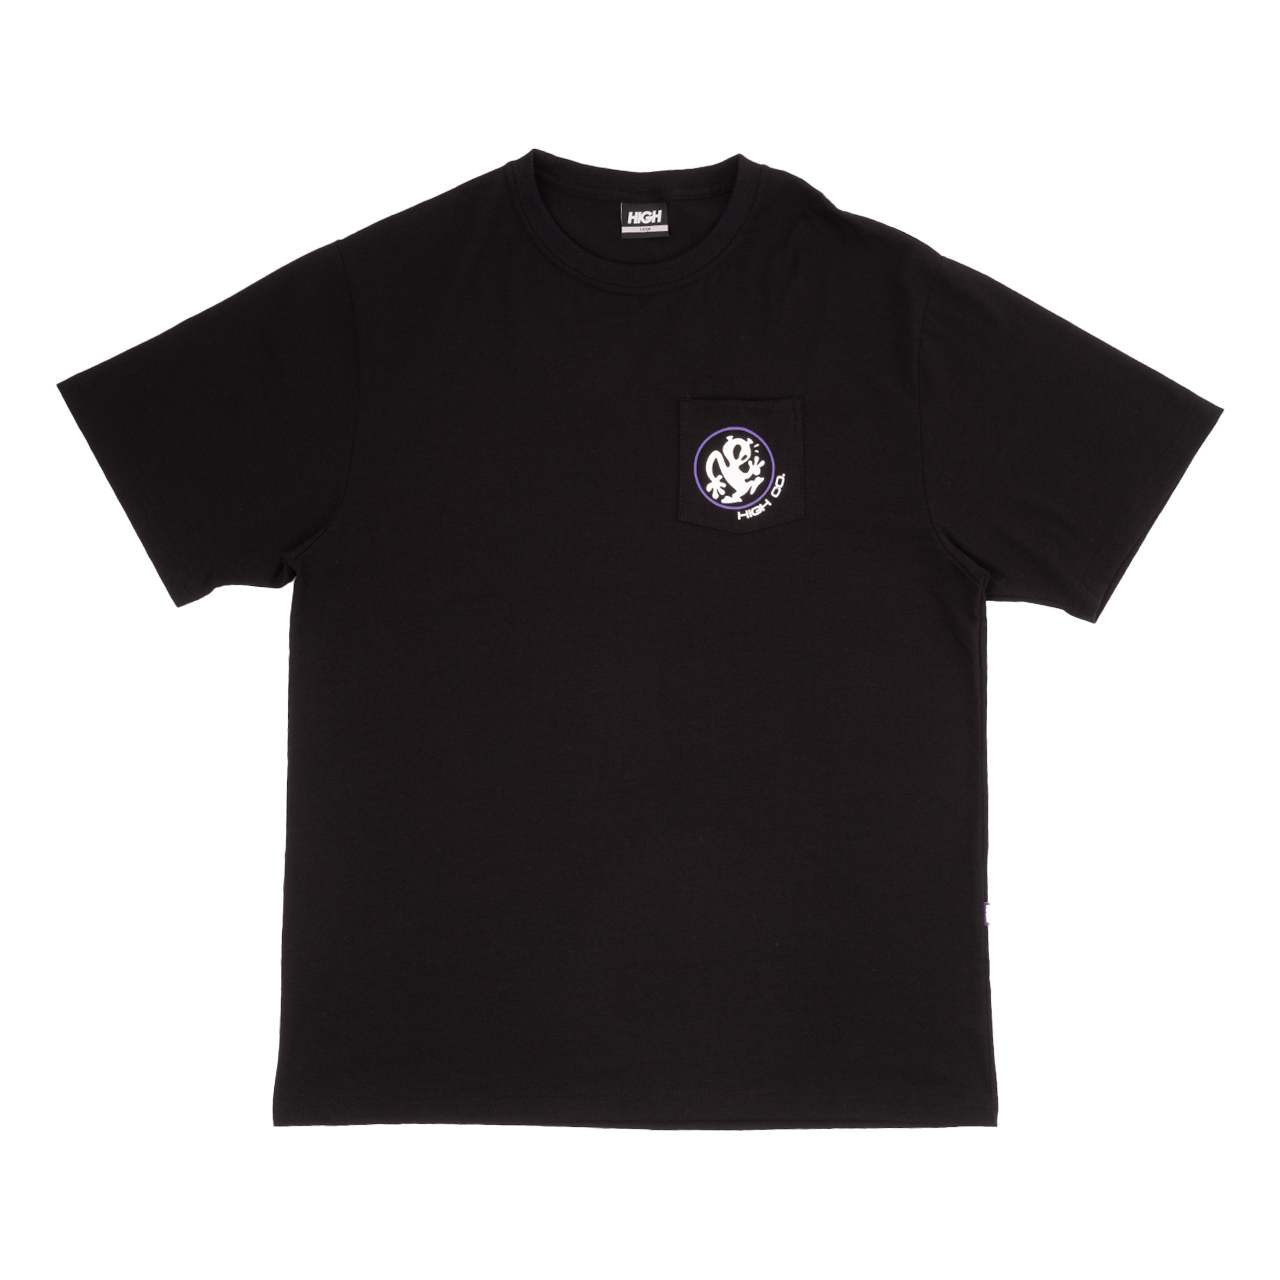 CAMISETA HIGH POCKET TEE OUTSIDER BLACK